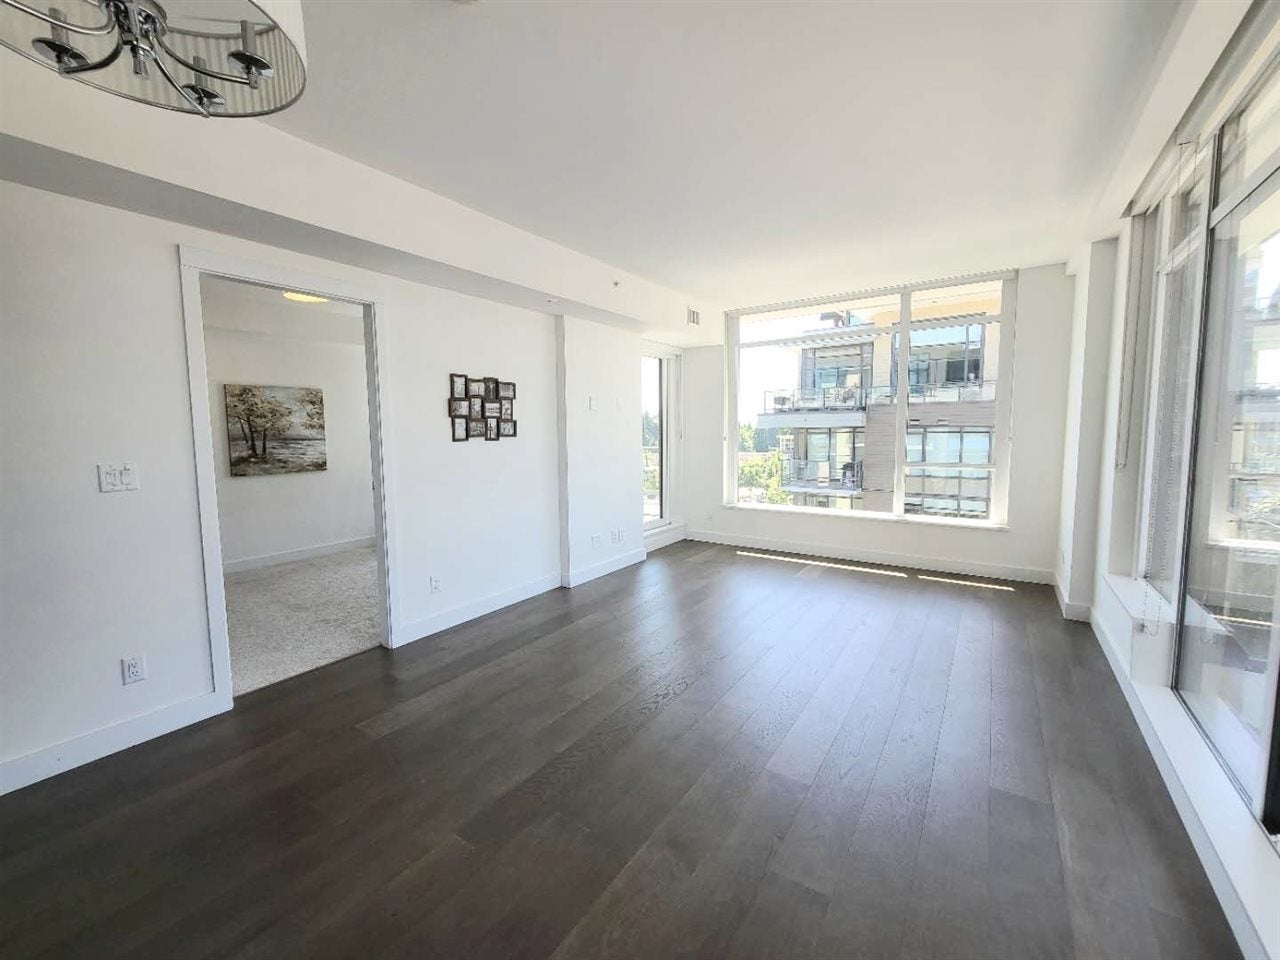 402 1295 CONIFER STREET - Lynn Valley Apartment/Condo for sale, 2 Bedrooms (R2464712) - #6